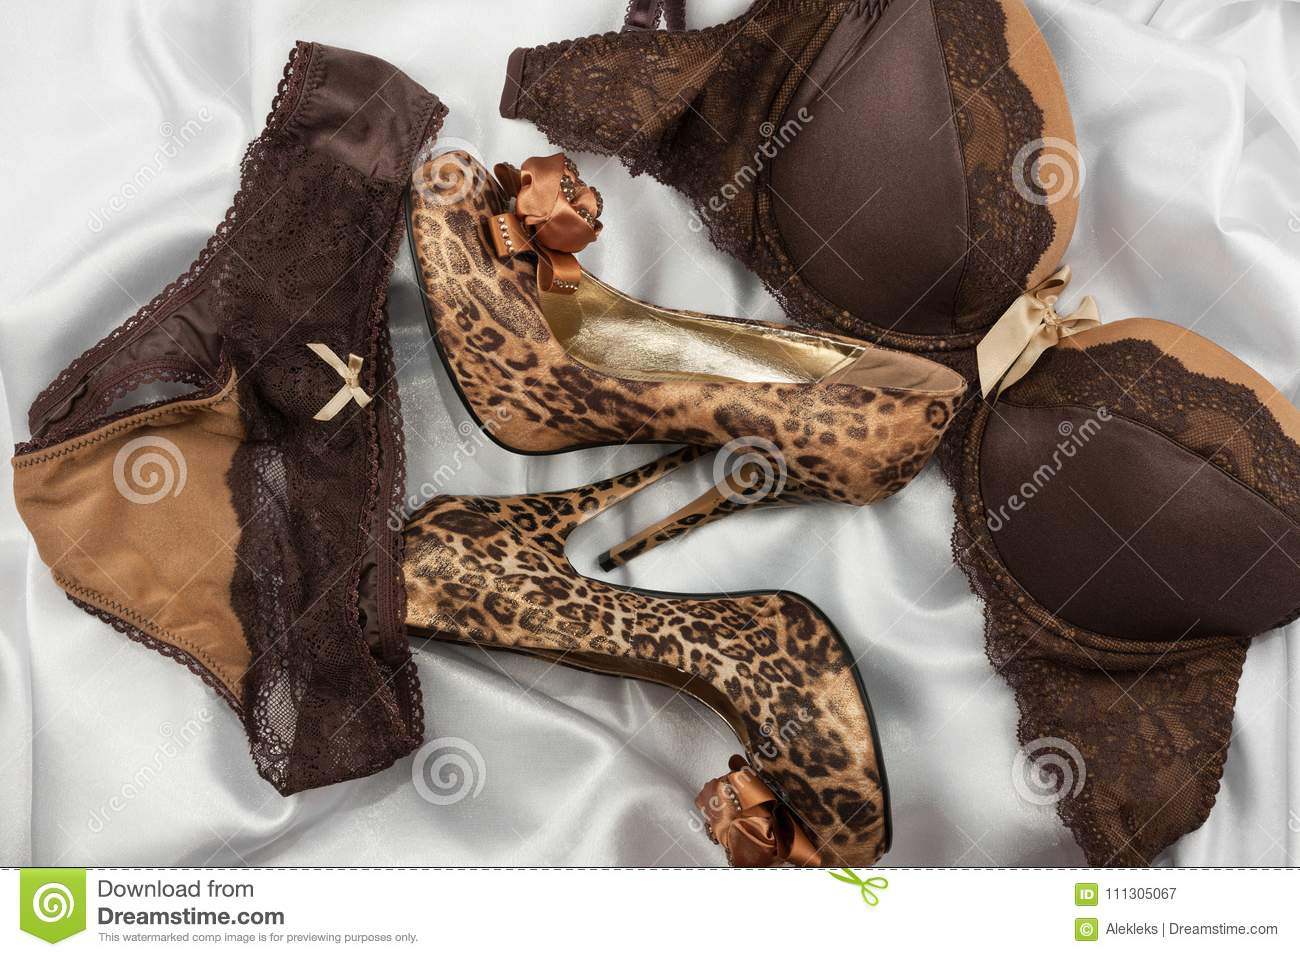 39a440976db3 Set of glamorous stylish brown lace lingerie, woman leopard shoes on white  silk background.